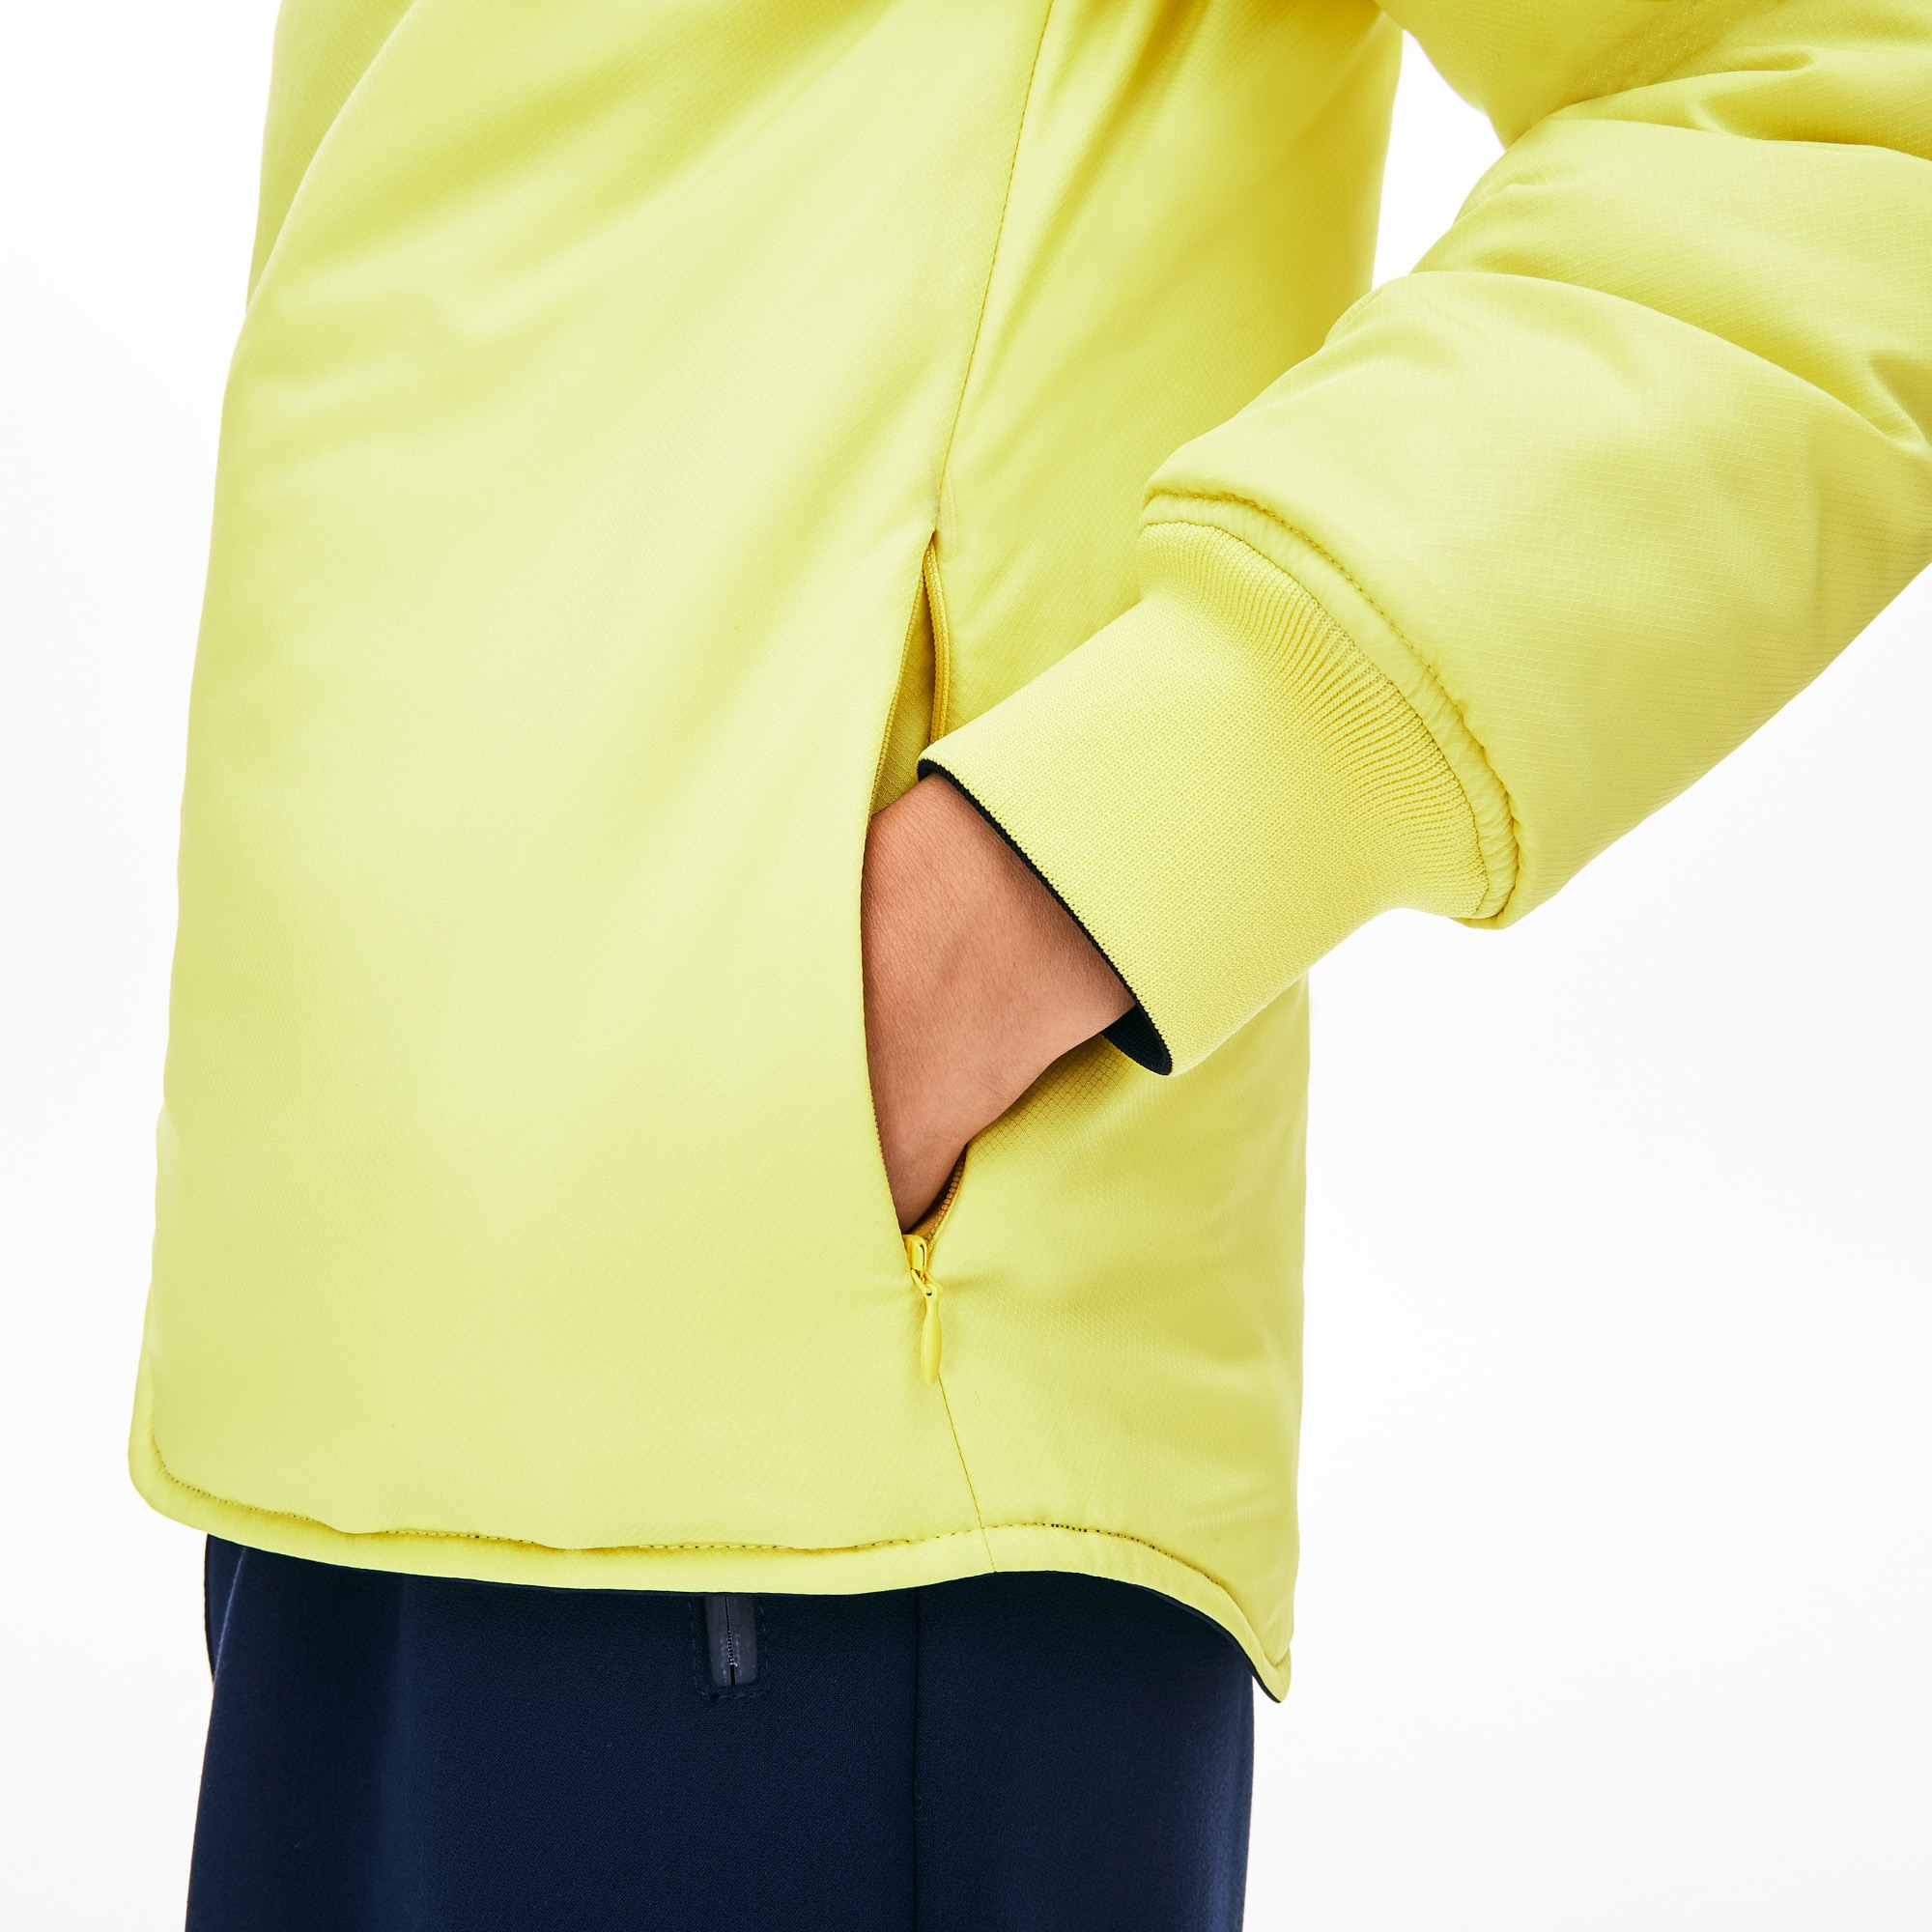 6936a79544 Women's Seamlessly Quilted Reversible Bi-Material Rain Jacket